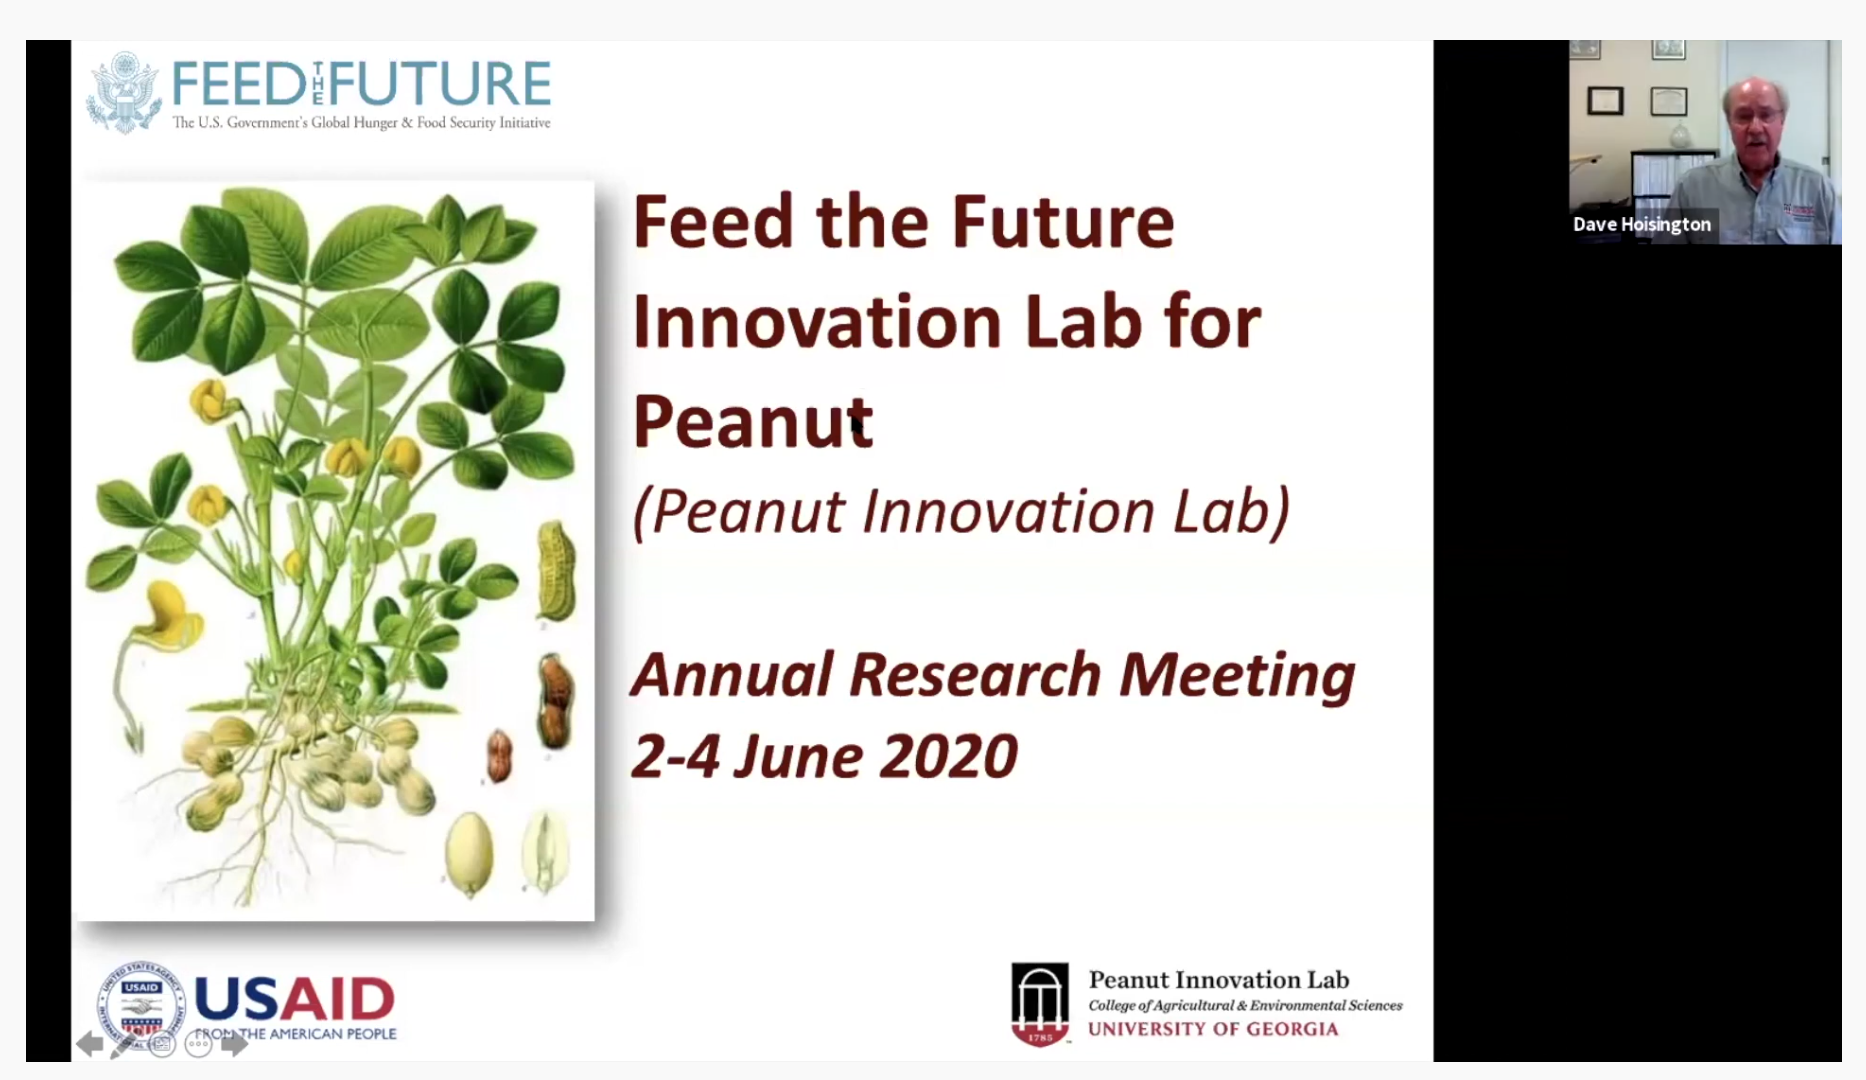 The Peanut Innovation Lab at UGA recently held its annual meeting online. More than 100 scientists and students from around the world attended.